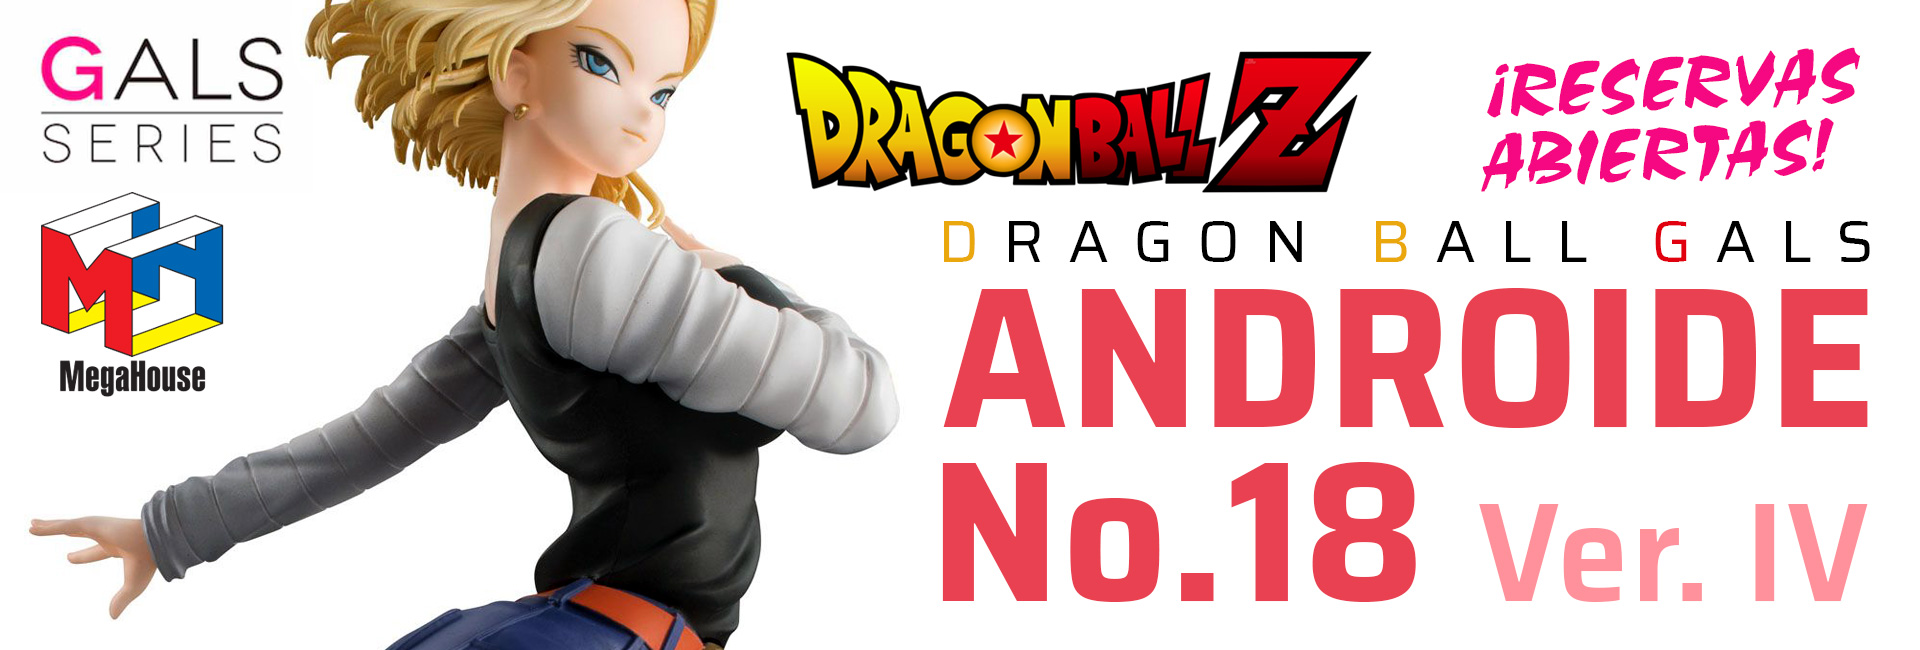 Dragon Ball Gals Androide 18